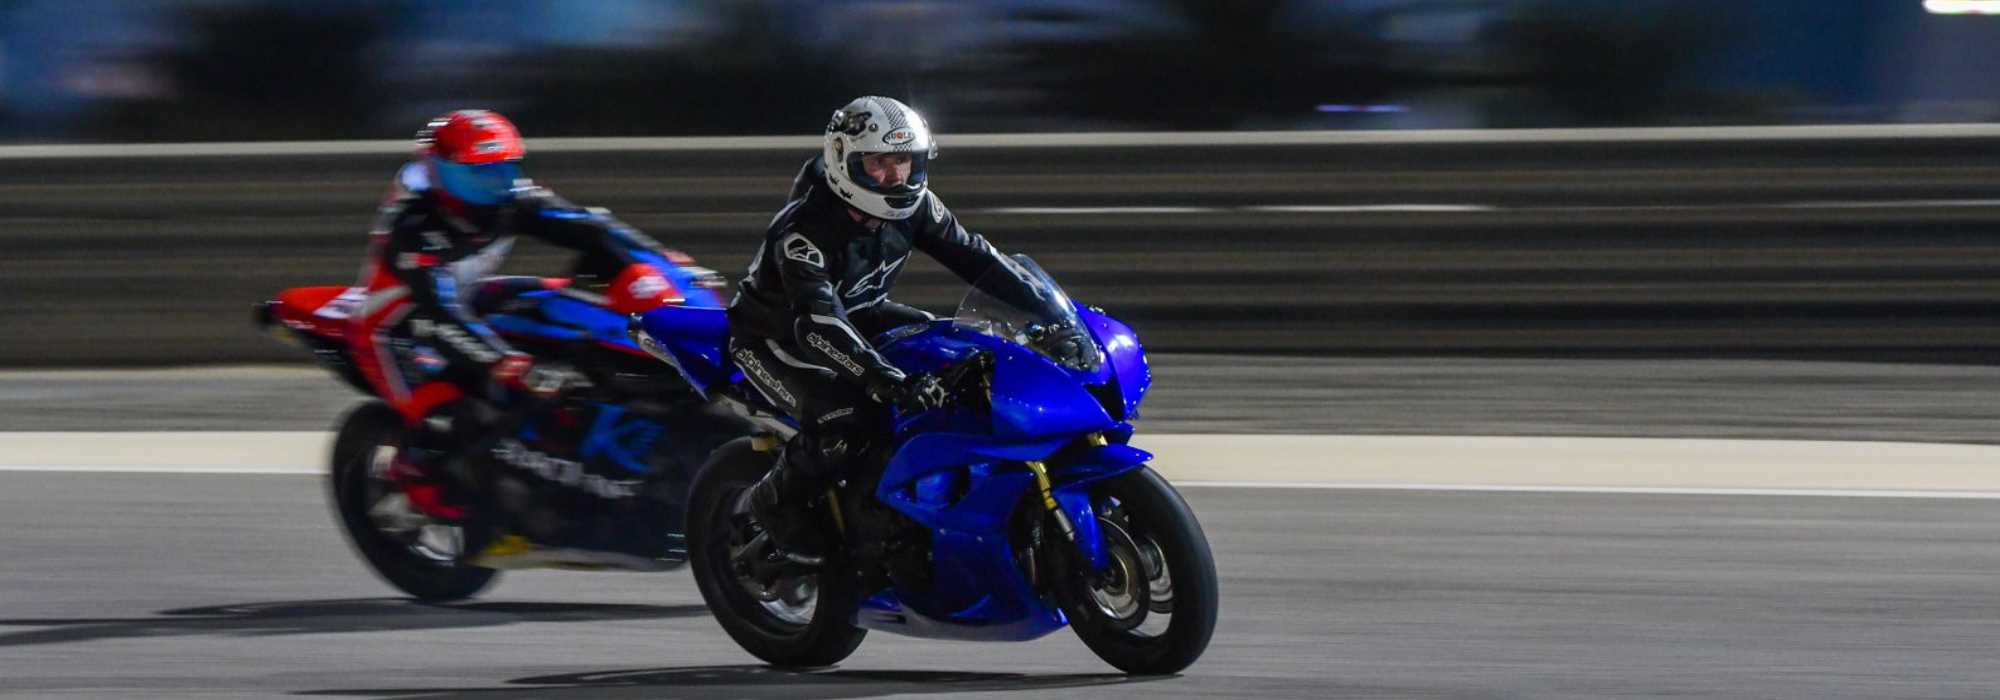 Supreme thrills for race fans at Open Track on Saturday at BIC